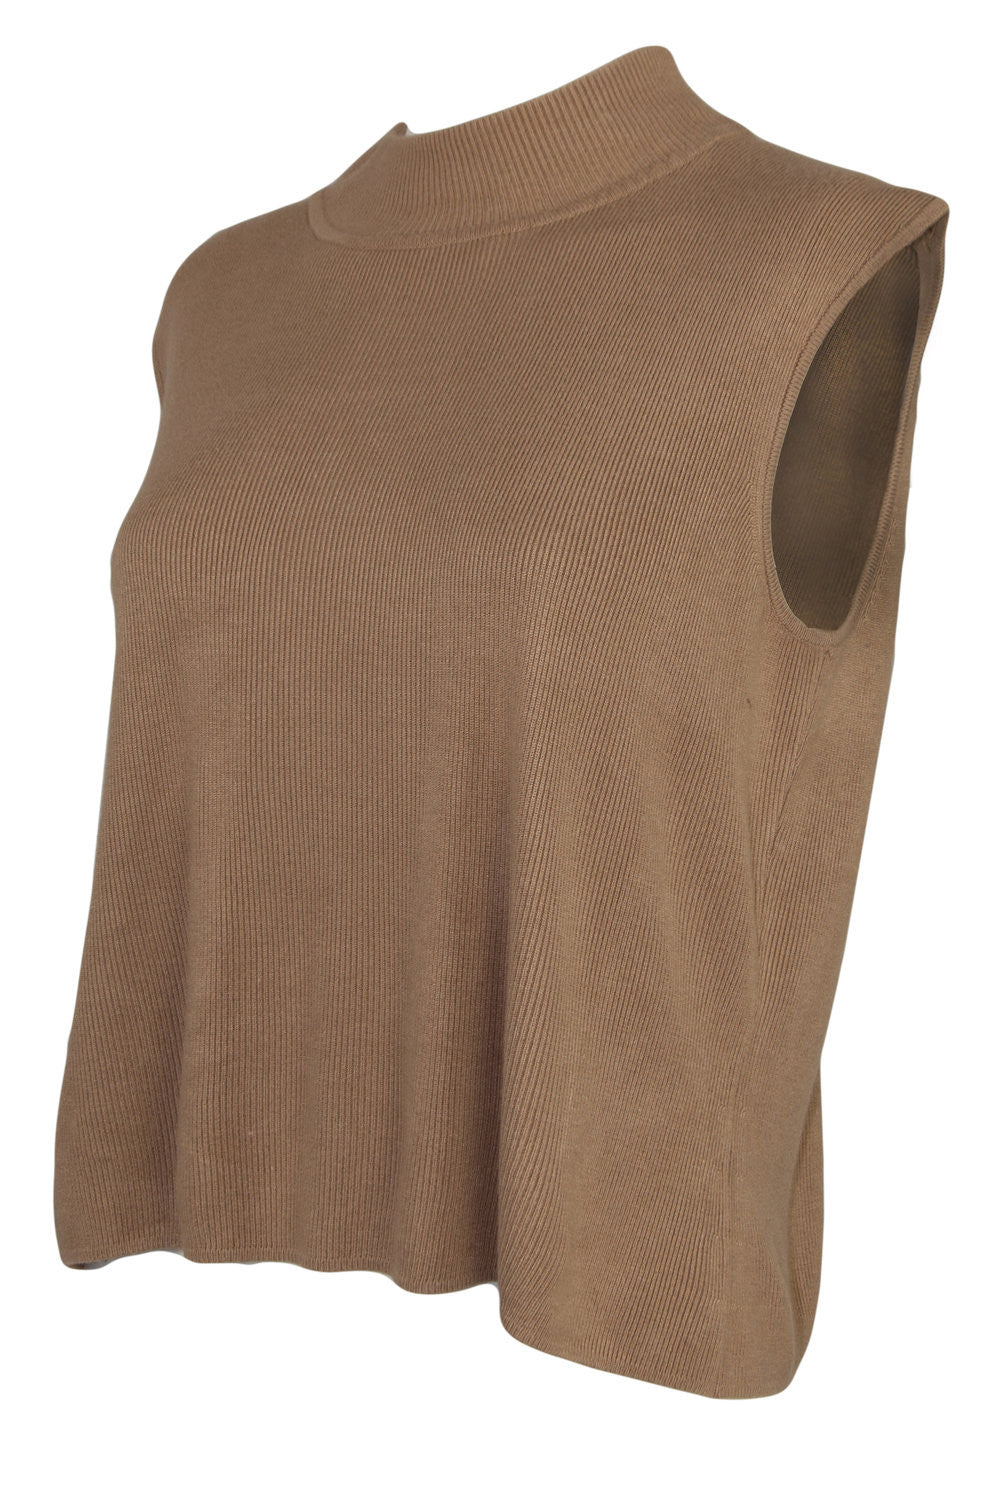 Vintage camel mock neck top